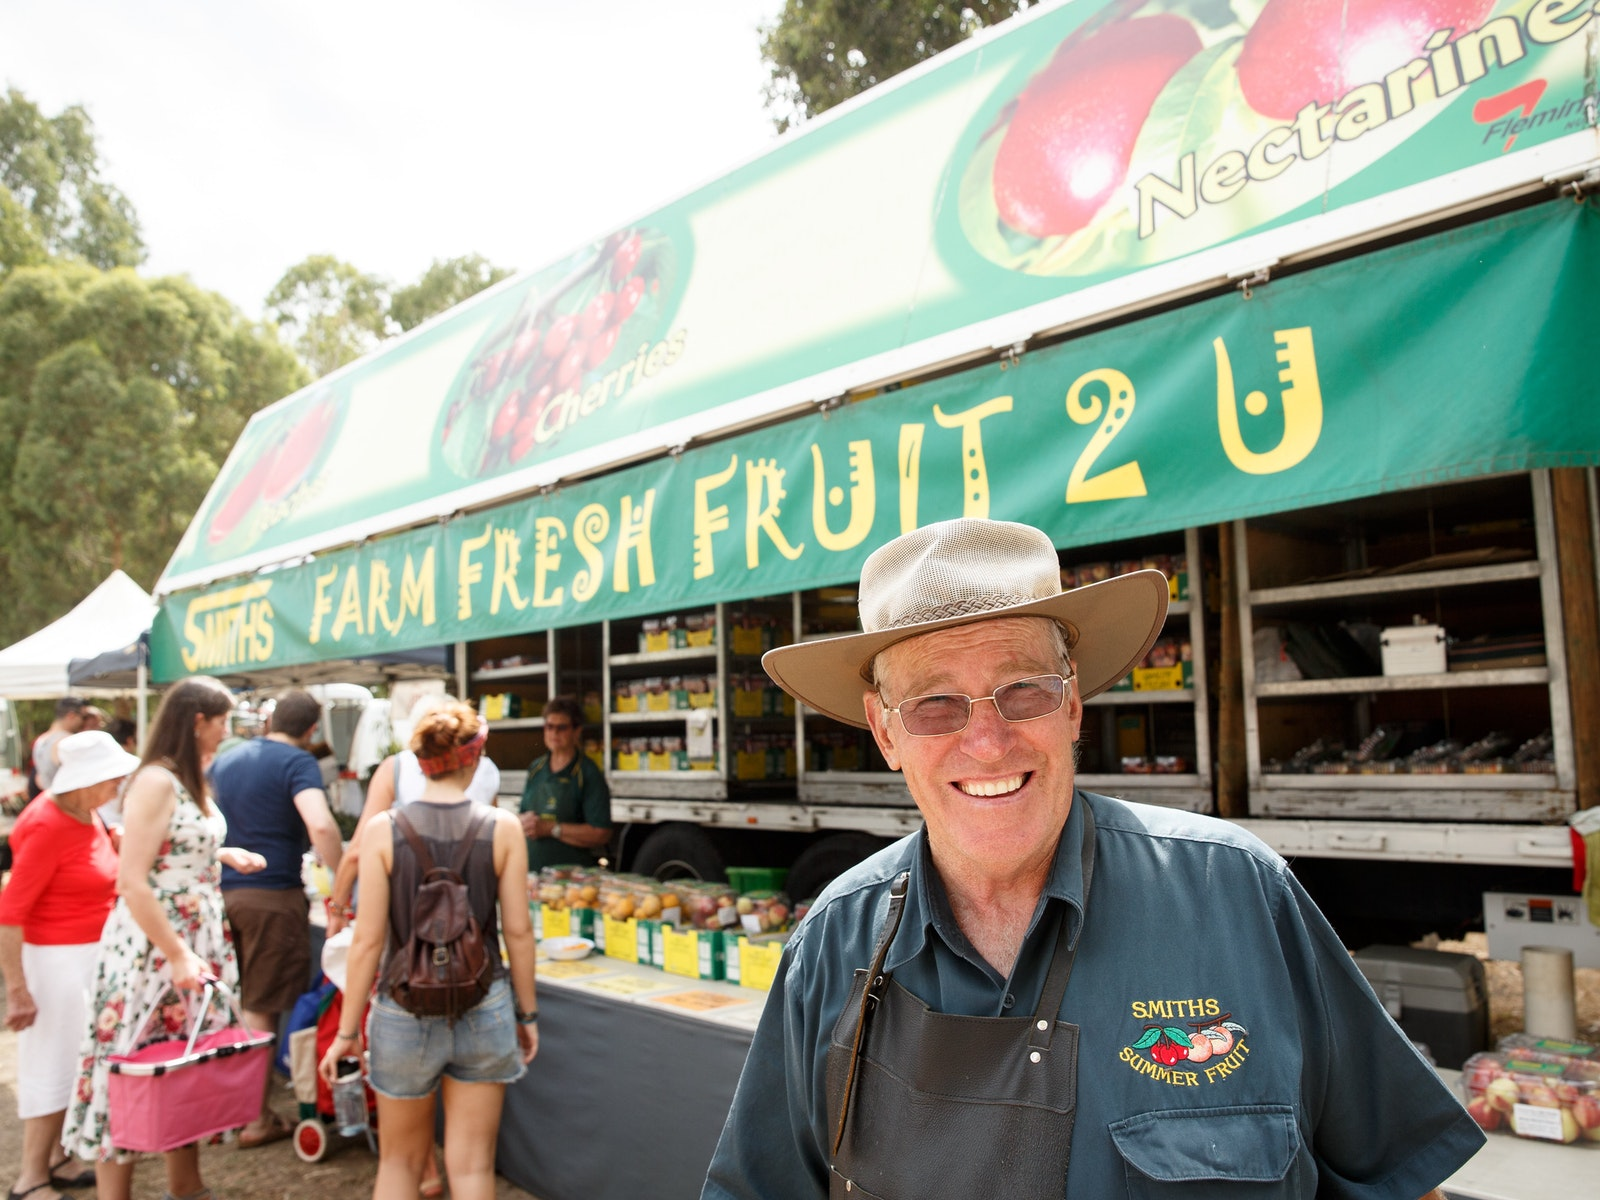 Smiths Farm Fresh Fruit